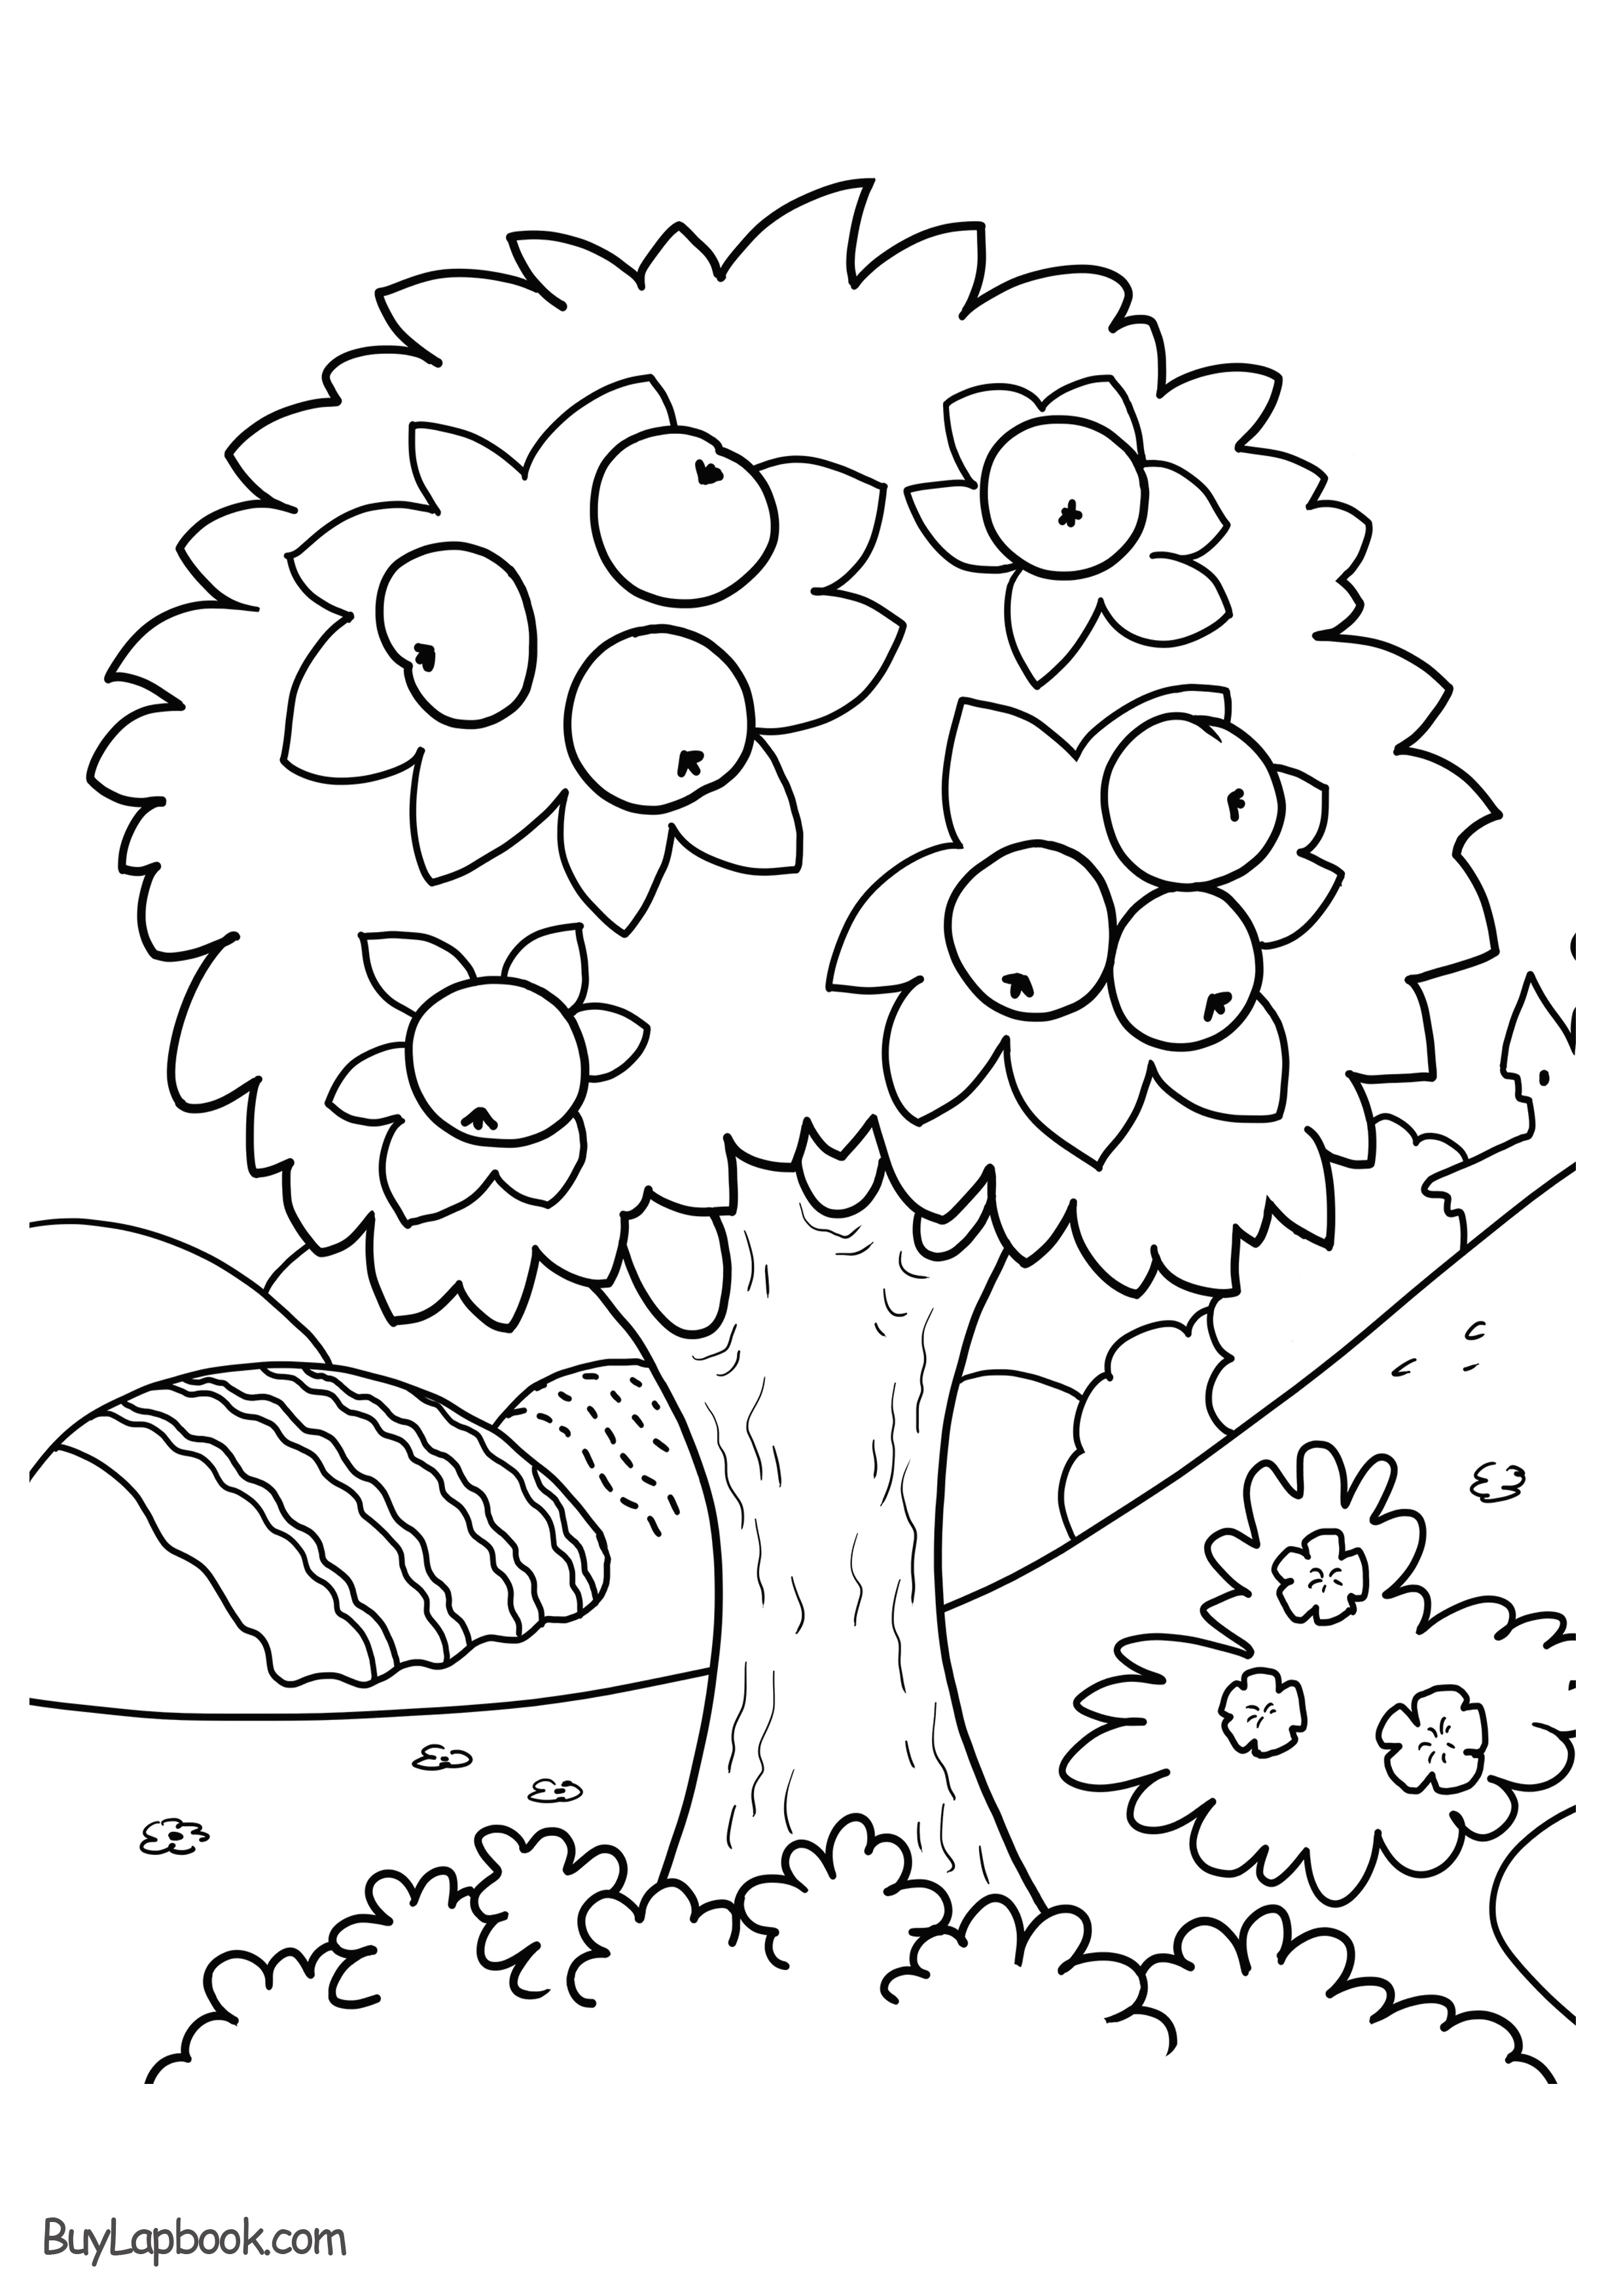 Apple Tree Coloring Page Free Printable Buylapbook